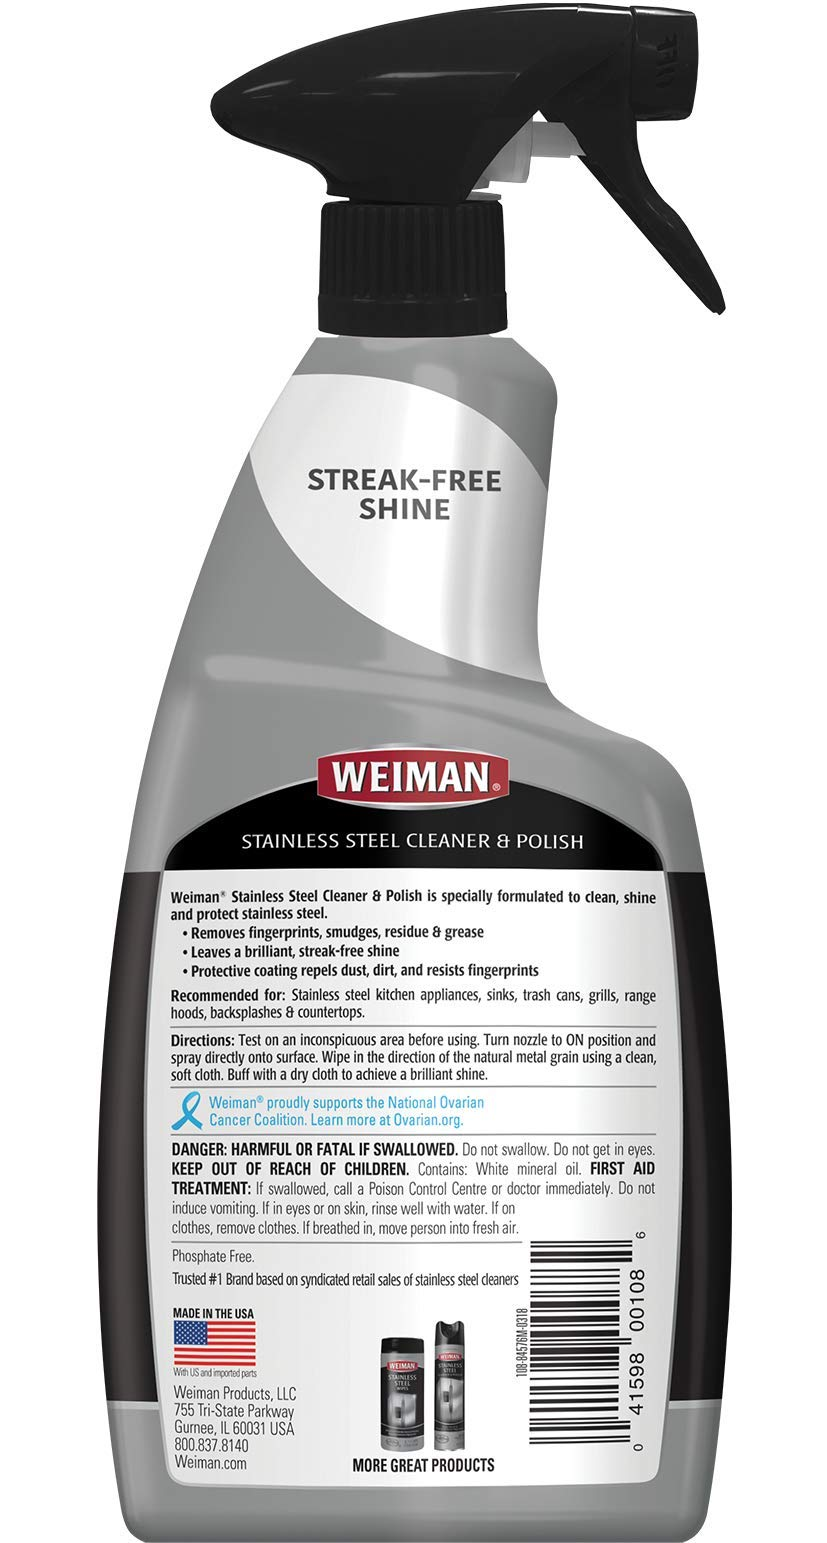 Weiman Stainless Steel Cleaner & Polish 22 fl oz - 6 pack by Weiman (Image #2)